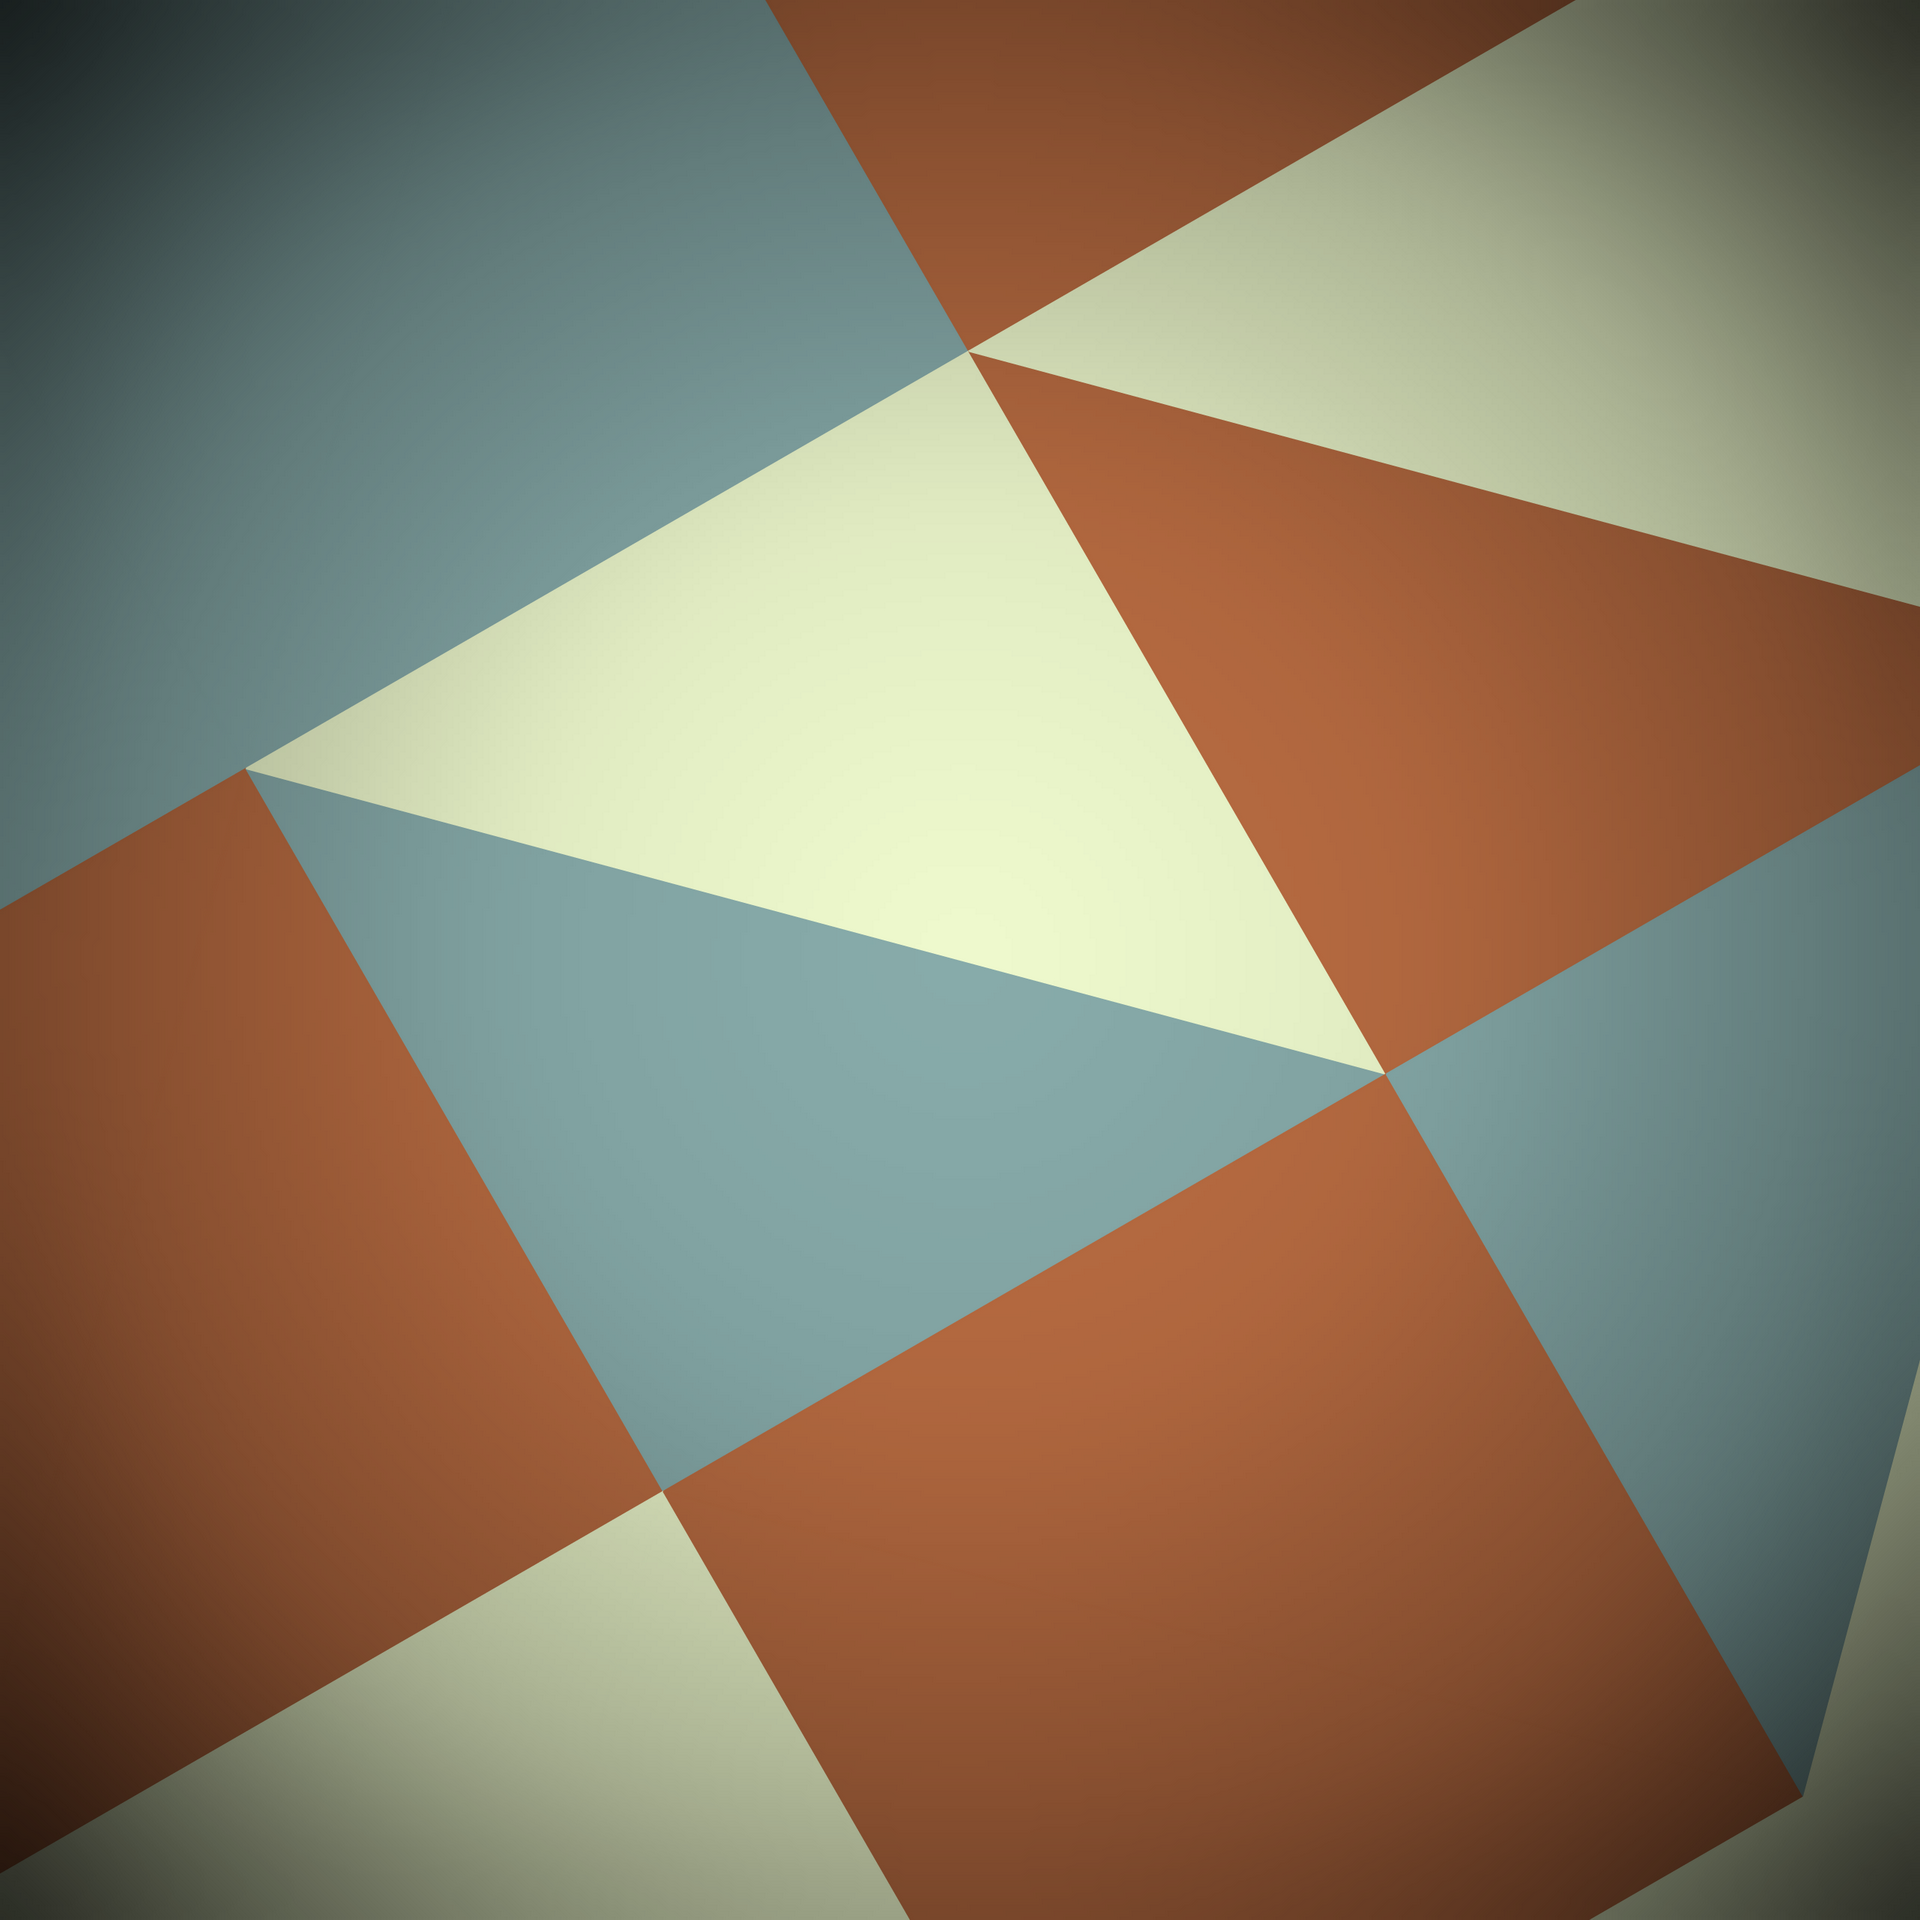 Right click on any design to download - Material Design Hd Wallpaper No 0206